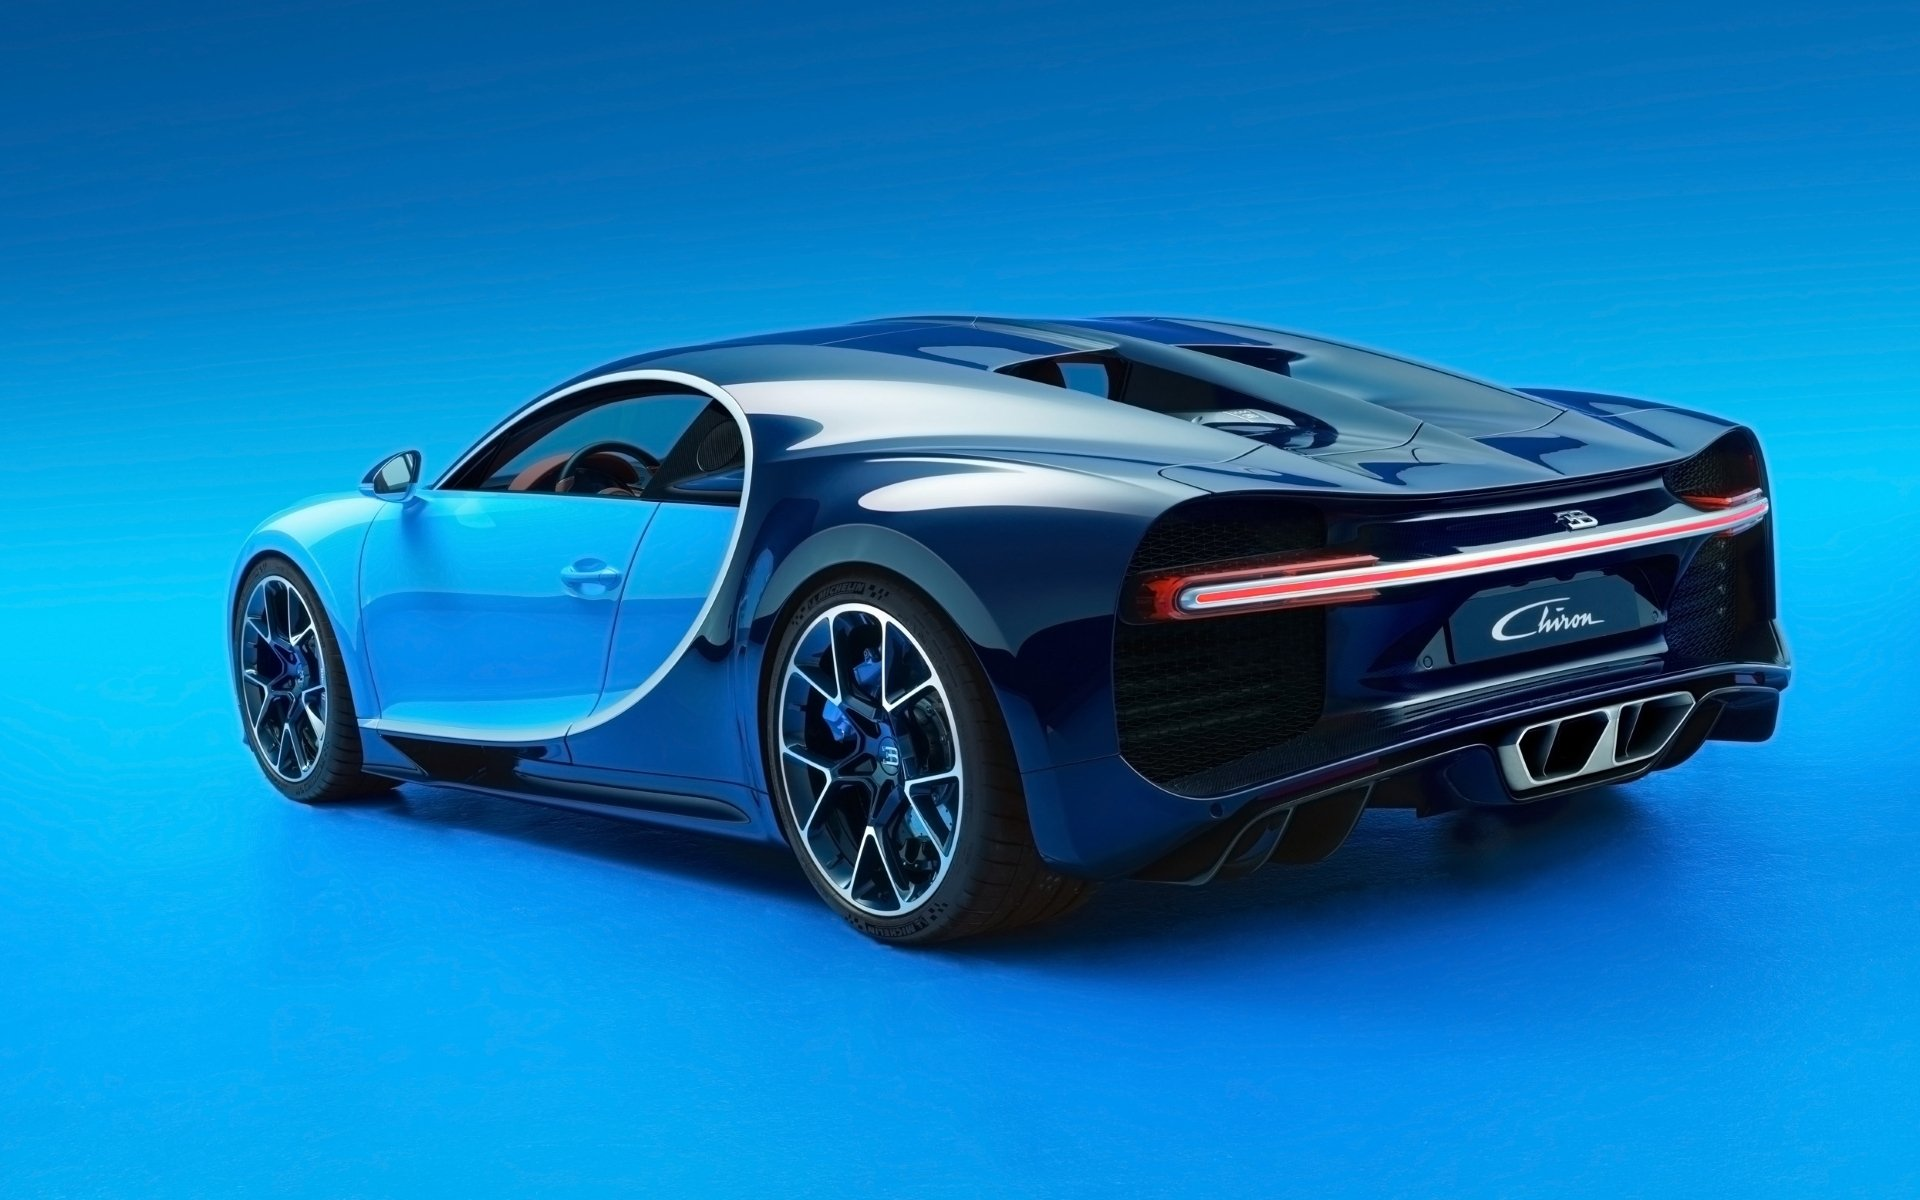 Vehicles - Bugatti Chiron  Bugatti Car Vehicle Blue Car Sport Car Supercar Wallpaper